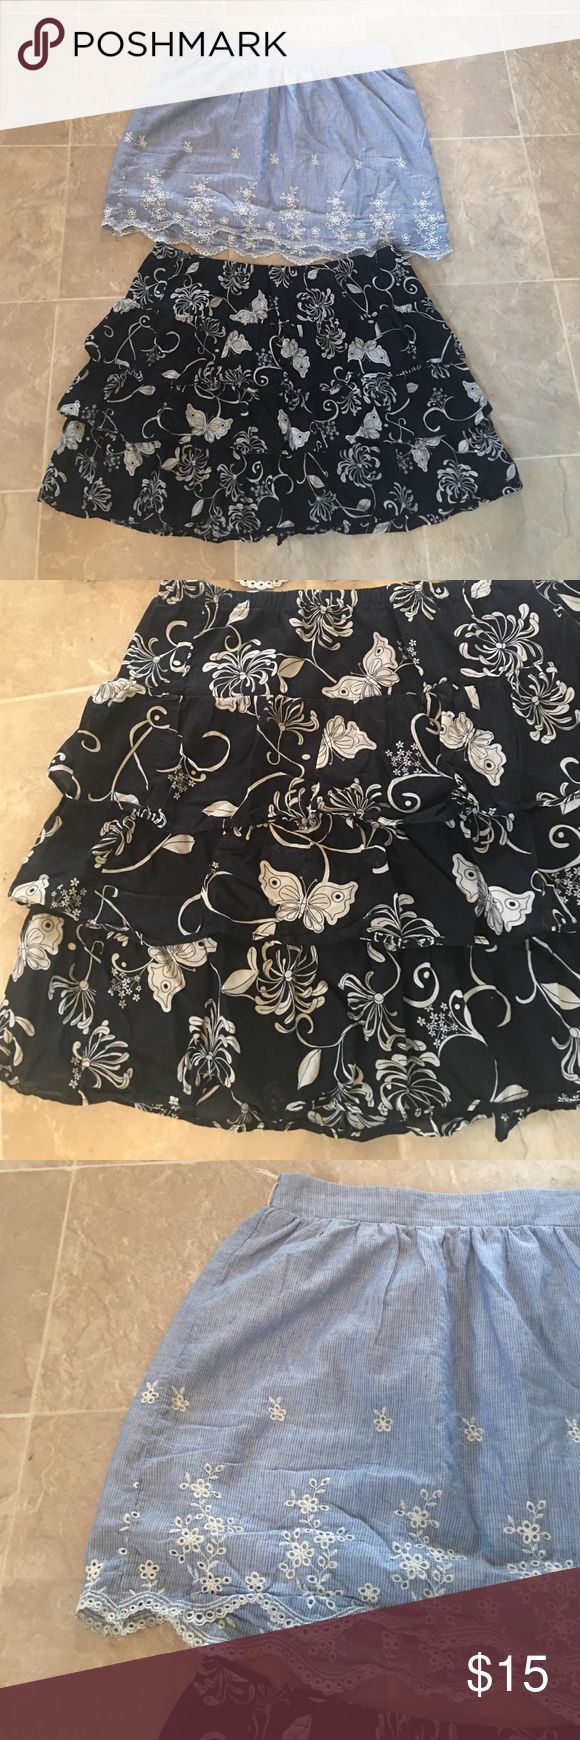 XL Summer Skirts 💎 Maurice's & Old Navy ! Both are like new condition! Maurice's and Old Navy Brand! Bundle and save with two or more listings! Smoke free pet free home! Ships within 2 business Days! Maurices & Old Navy Skirts